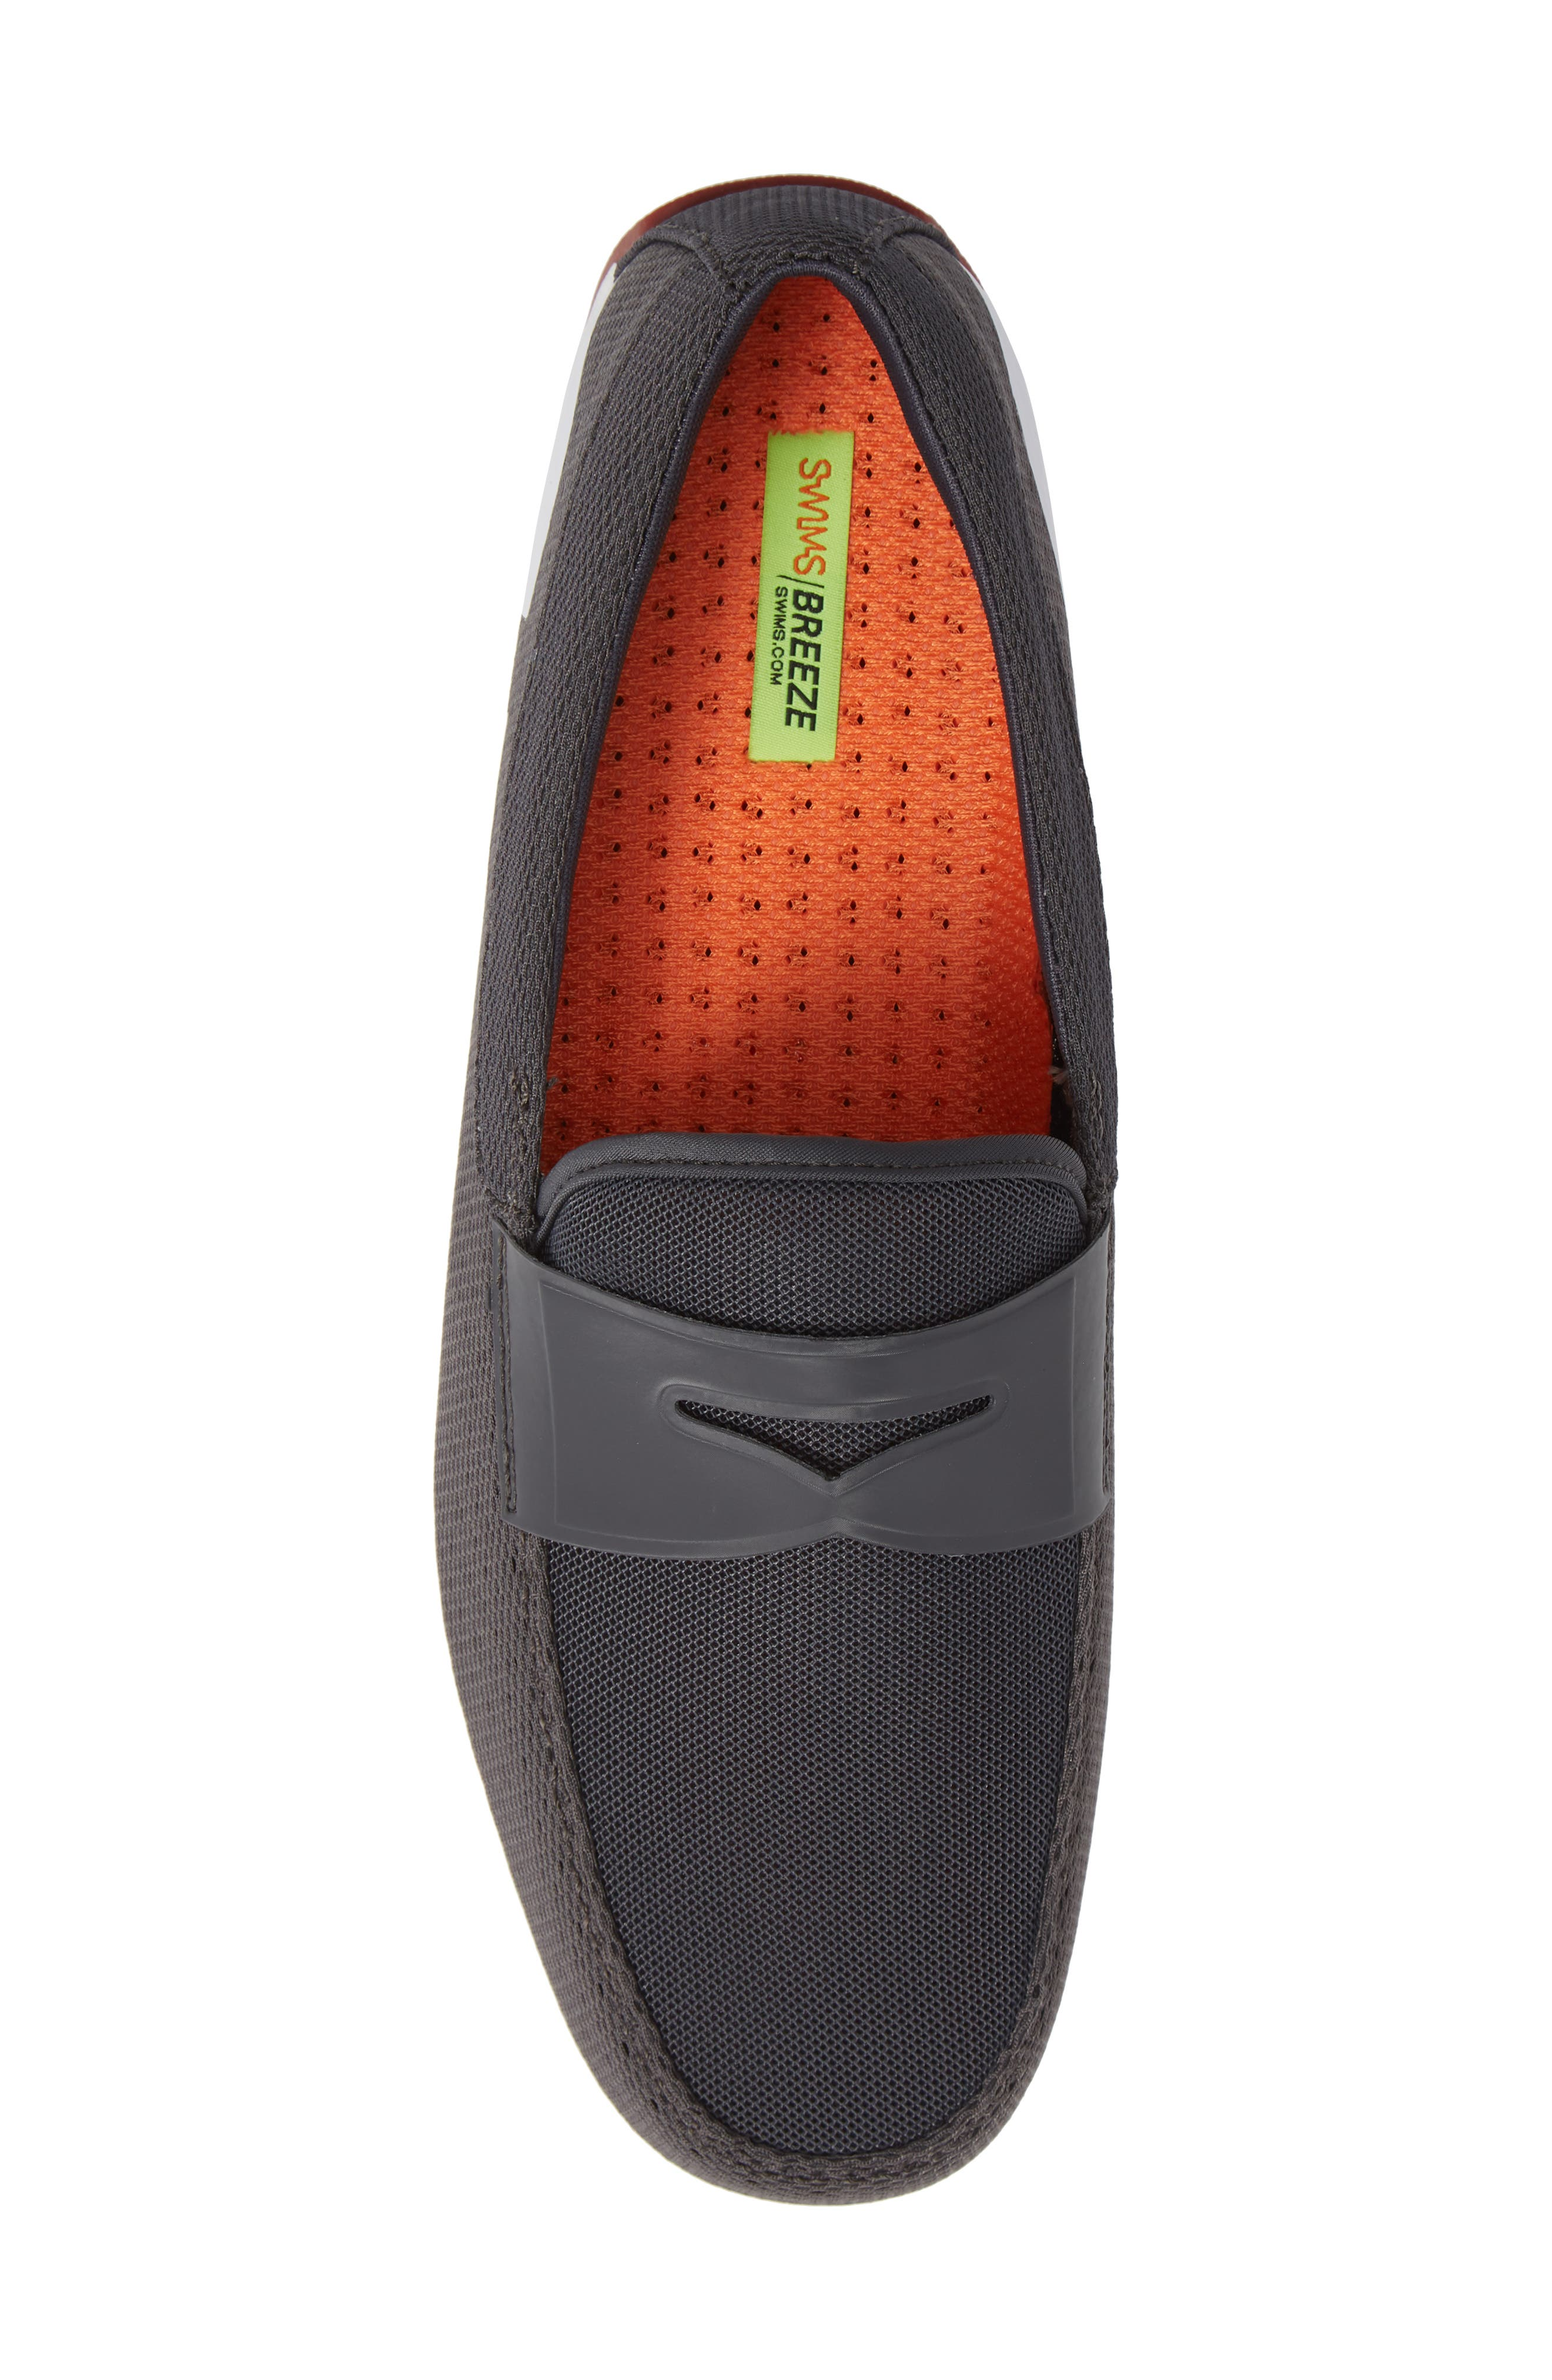 Breeze Penny Loafer,                             Alternate thumbnail 4, color,                             Dark Gray/Red Lacquer